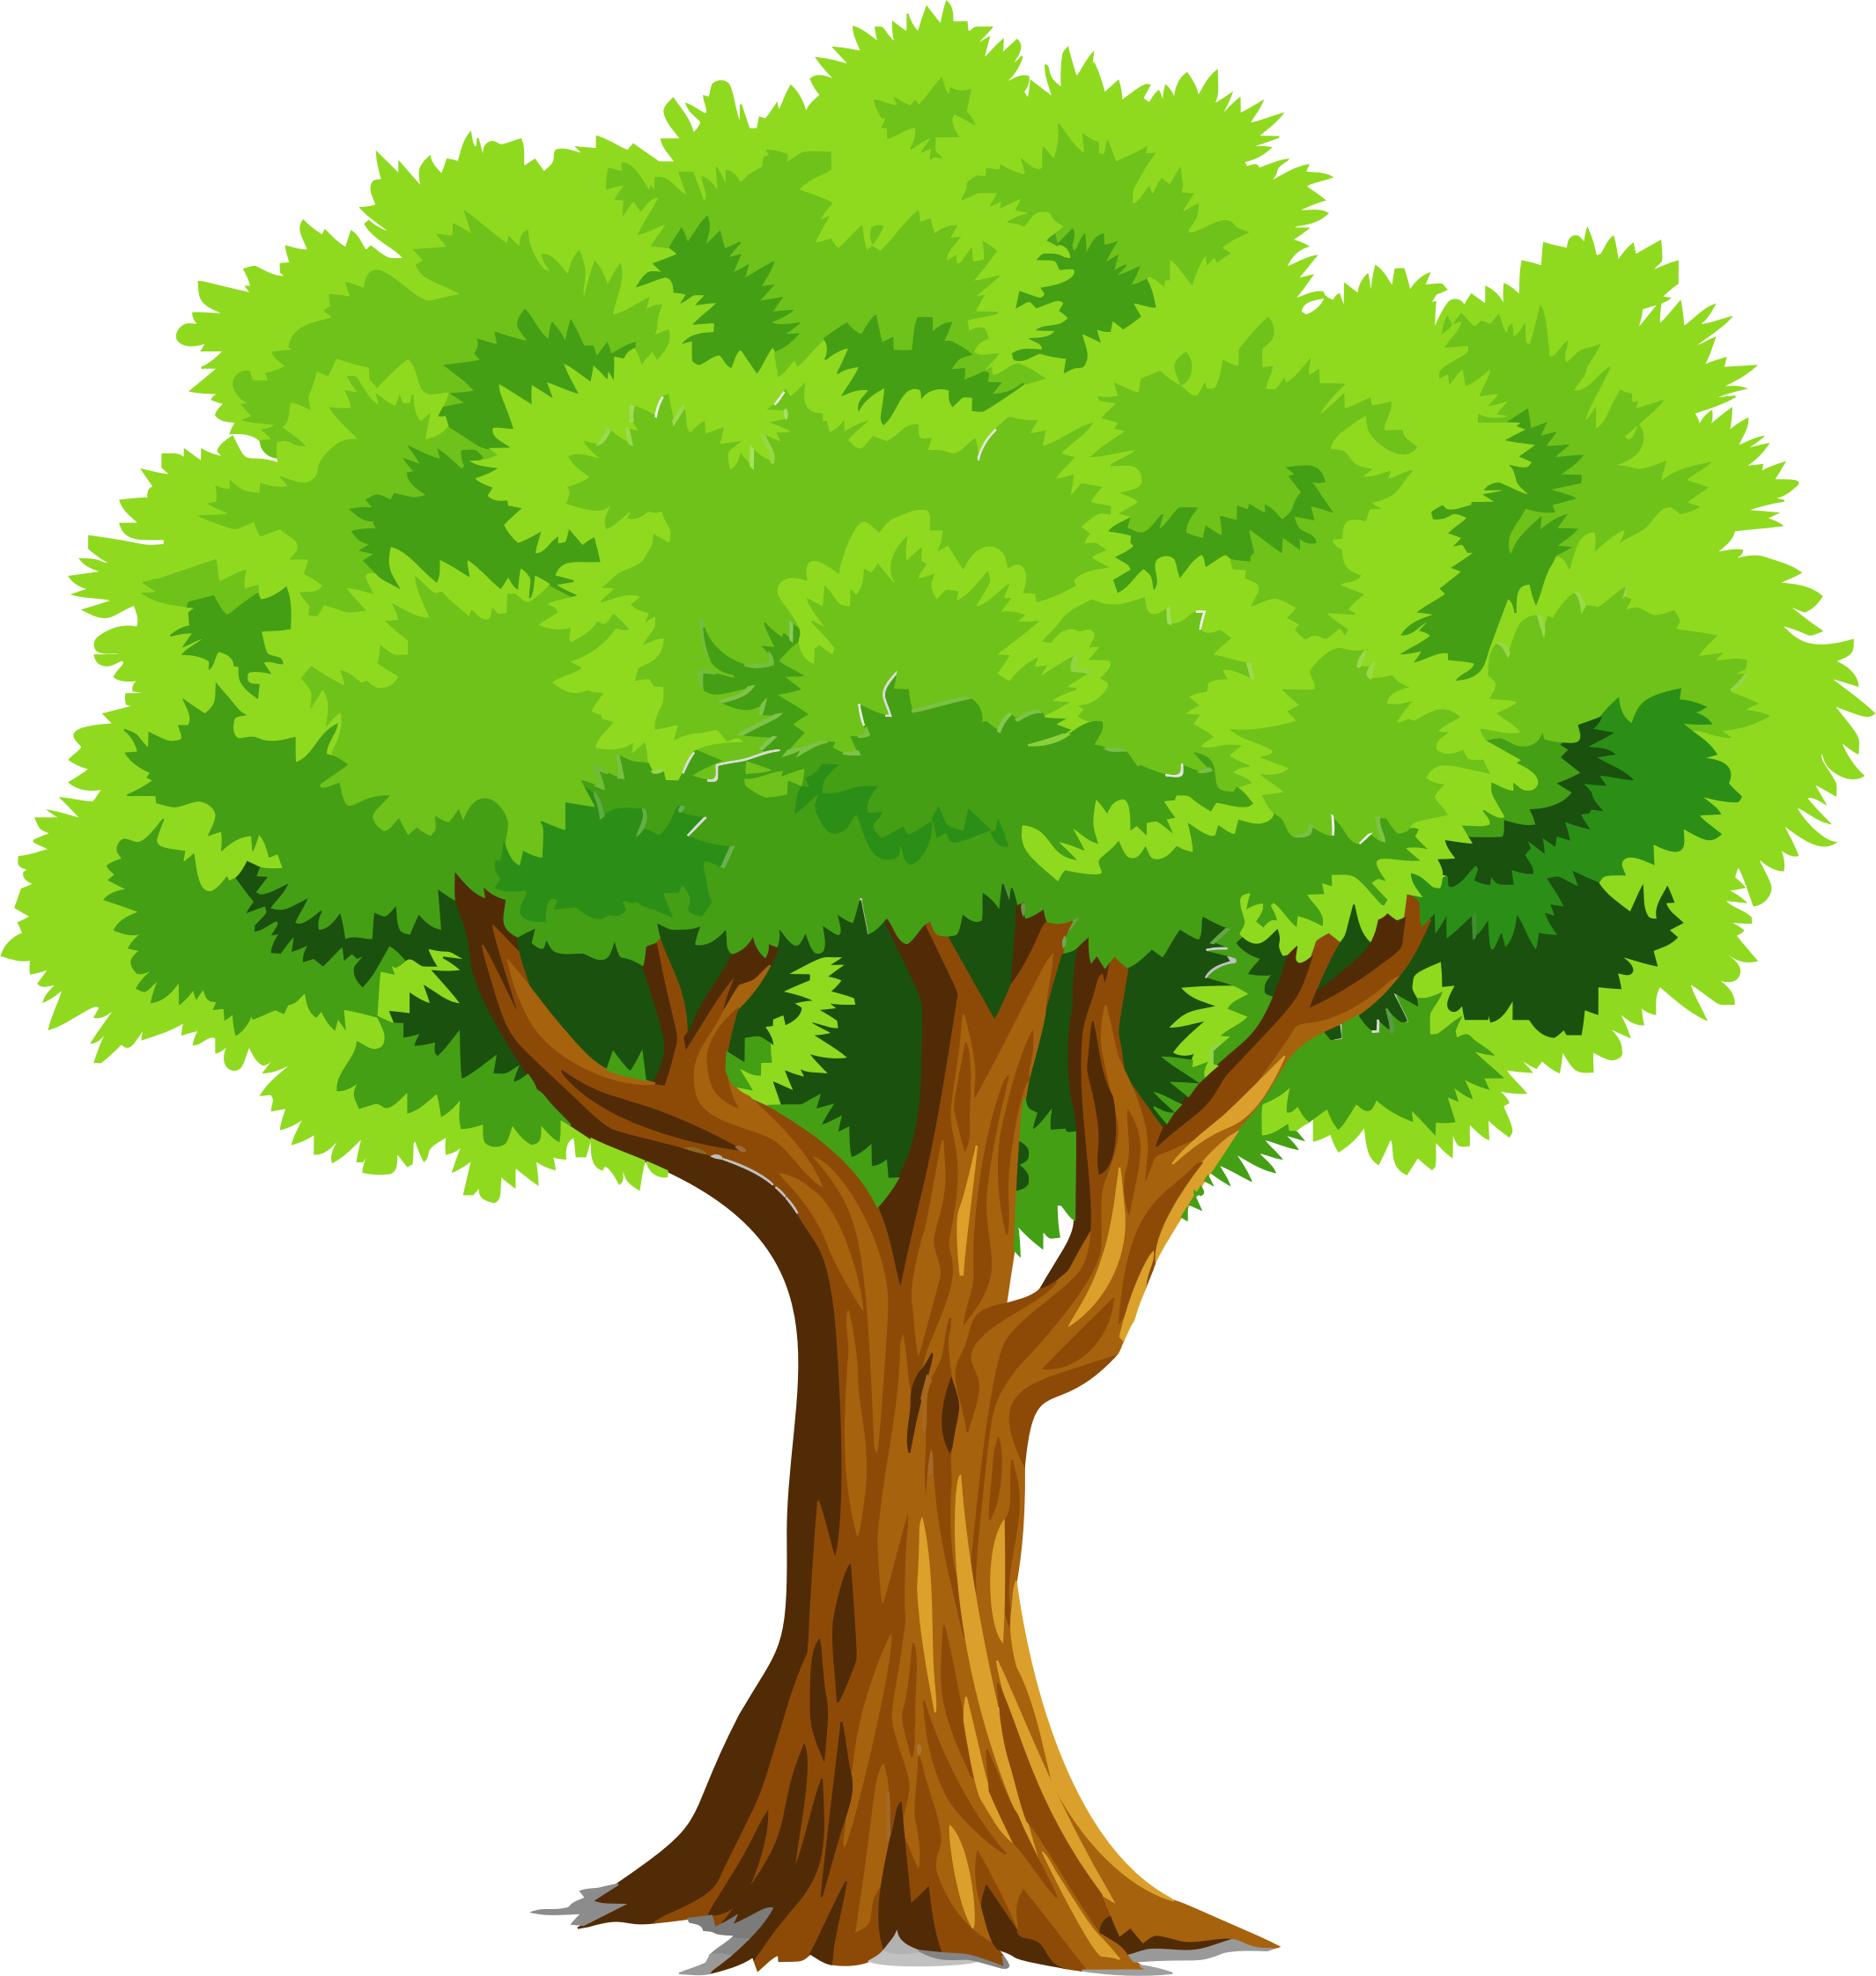 Cartoon Narra Tree / When designing a new logo you can be inspired by the visual logos found here.